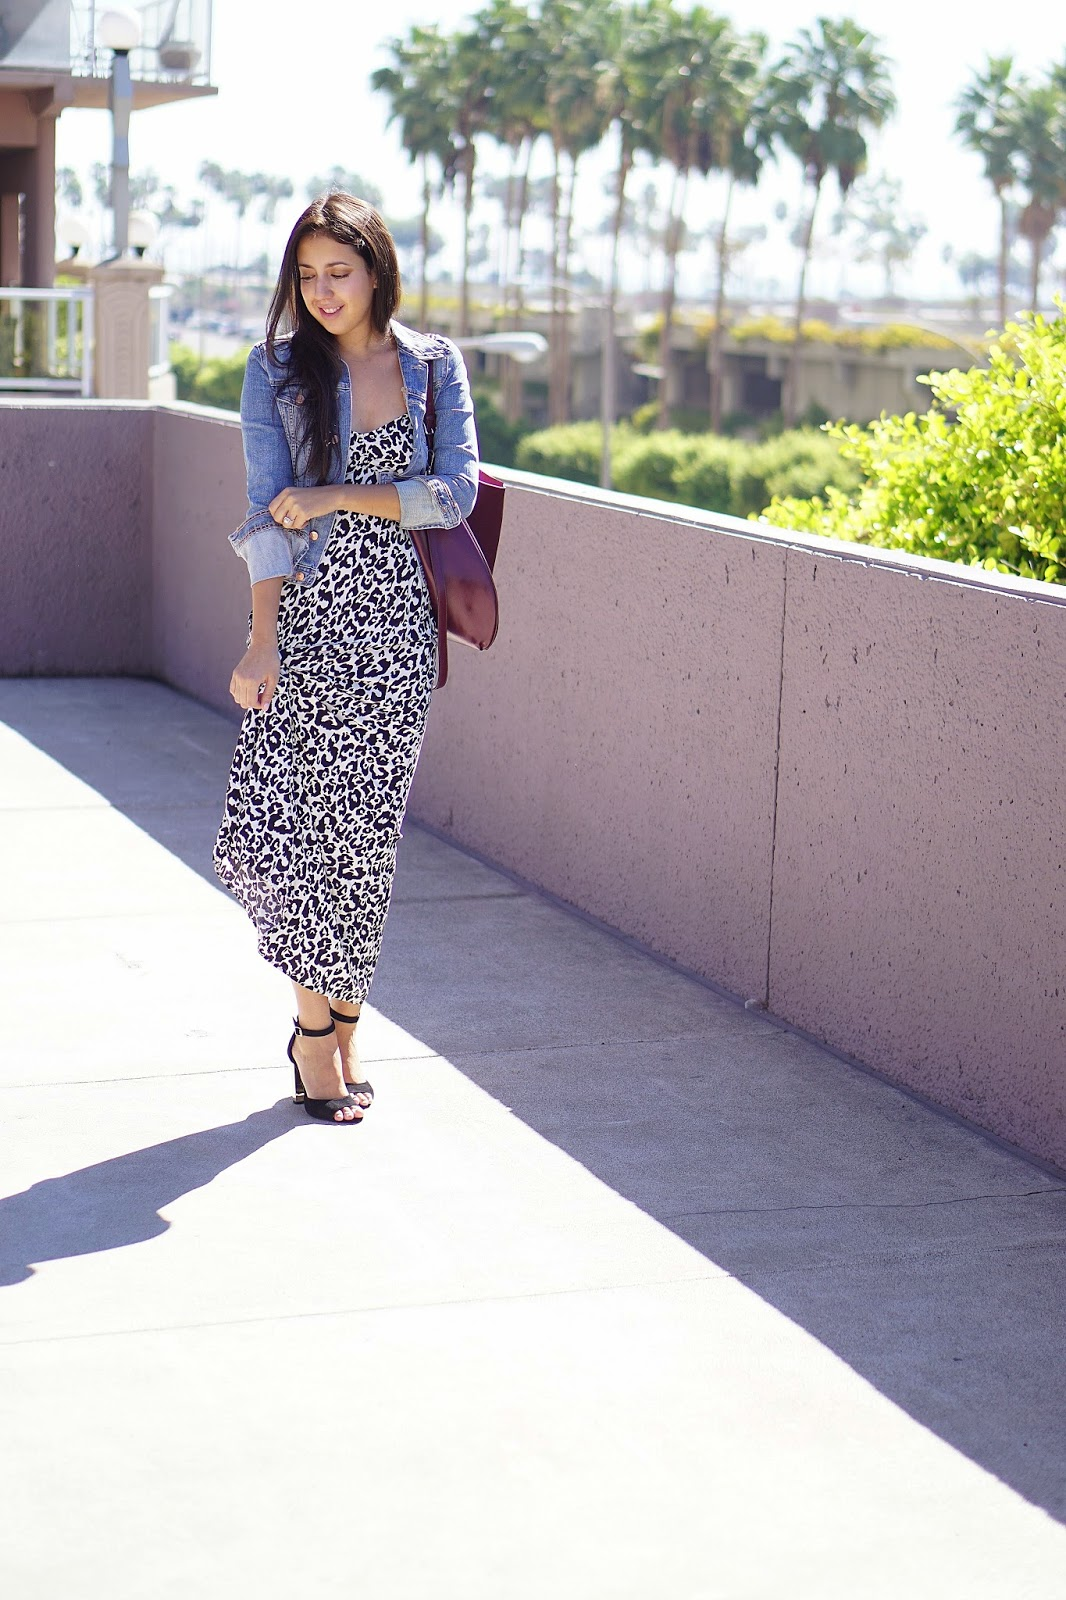 Chilli Beans Sunglasses, Levis Denim Jacket, Leopard Maxi Dress, Shoemint Penny Heels, Shoemint Heels, TJ Maxx Purse, Jean Jacket, Black Heels, H&M Maxi Dress, Burgundy Purse, Fall Outfit Ideas,